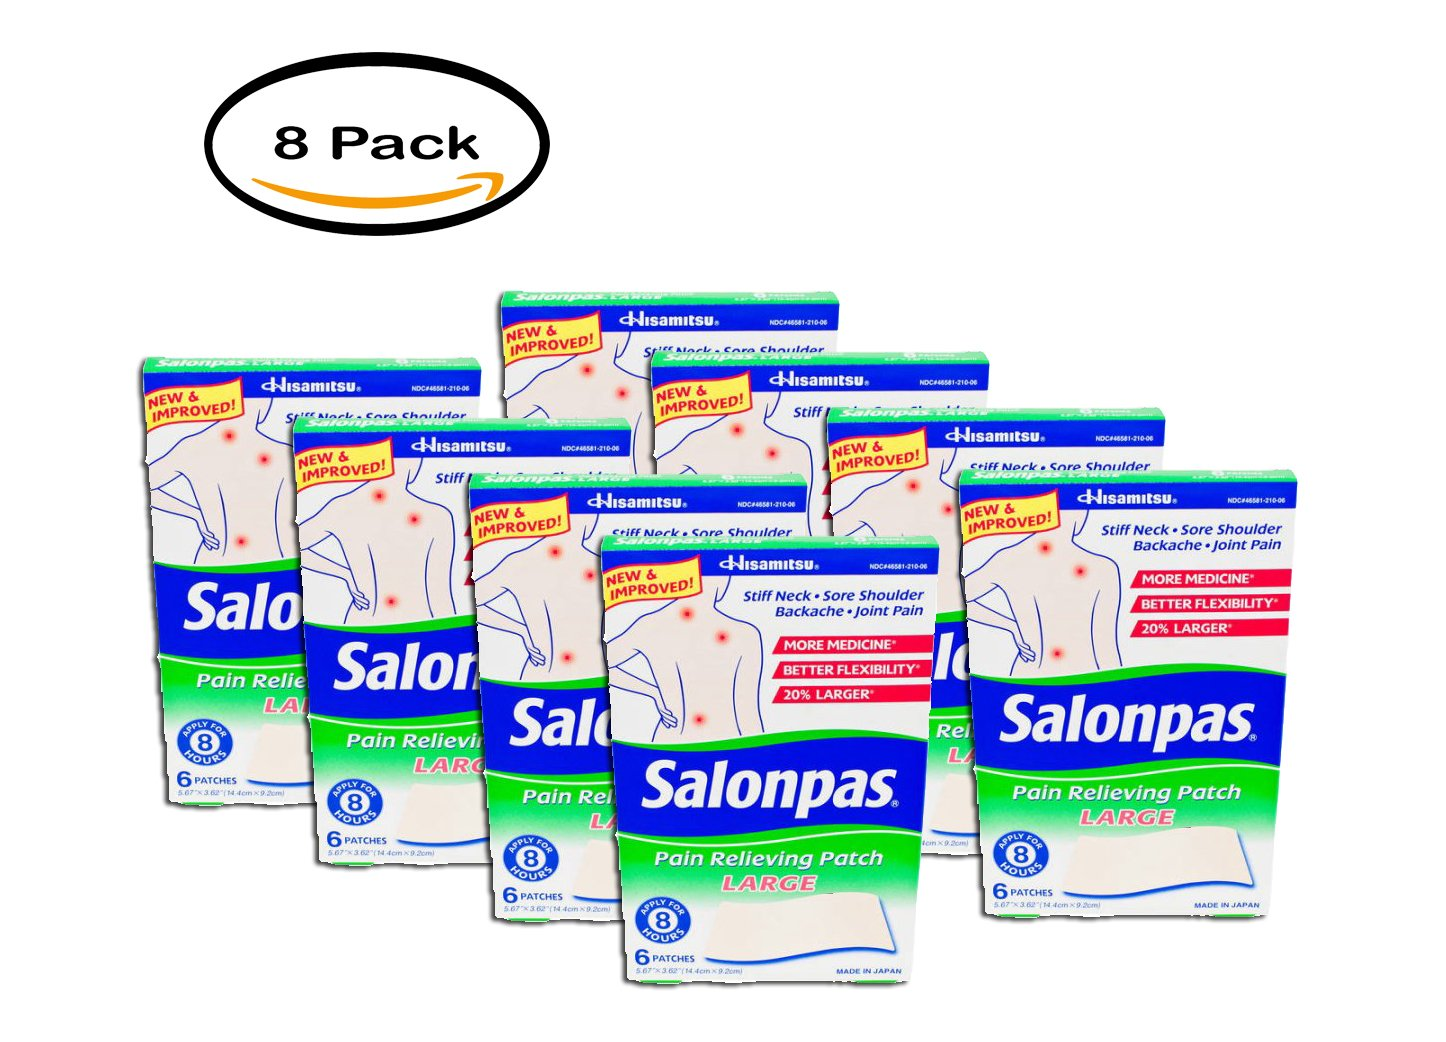 PACK OF 8 - Salonpas Large Pain Relieving Patches, 8 ct by Salonpas